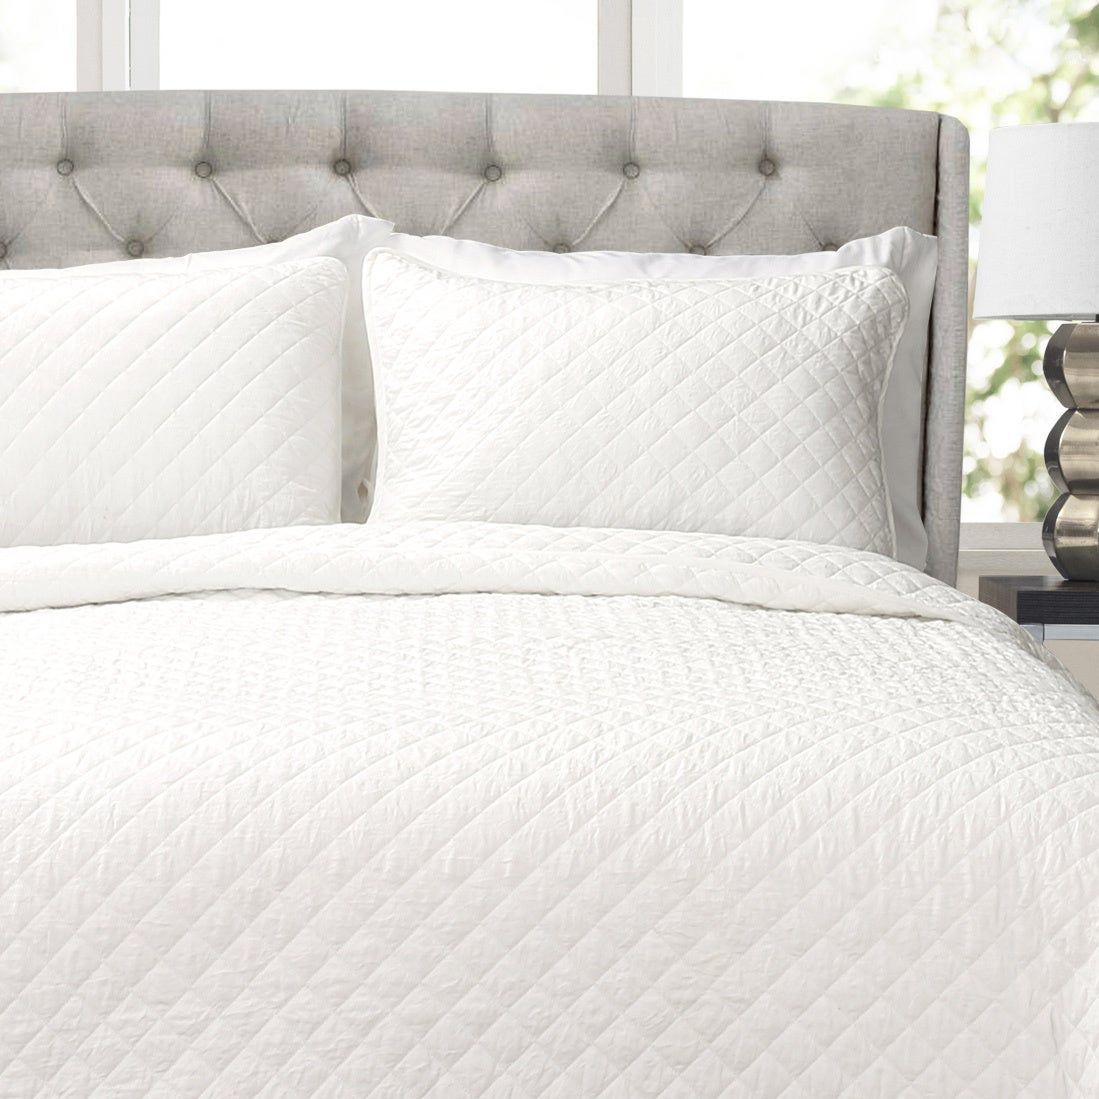 Copper Grove Balm Diamond Oversized Cotton 3 Piece Quilt Set King Size In Blue As Is Item Online Bedding Stores Quilt Sets Affordable Bedding